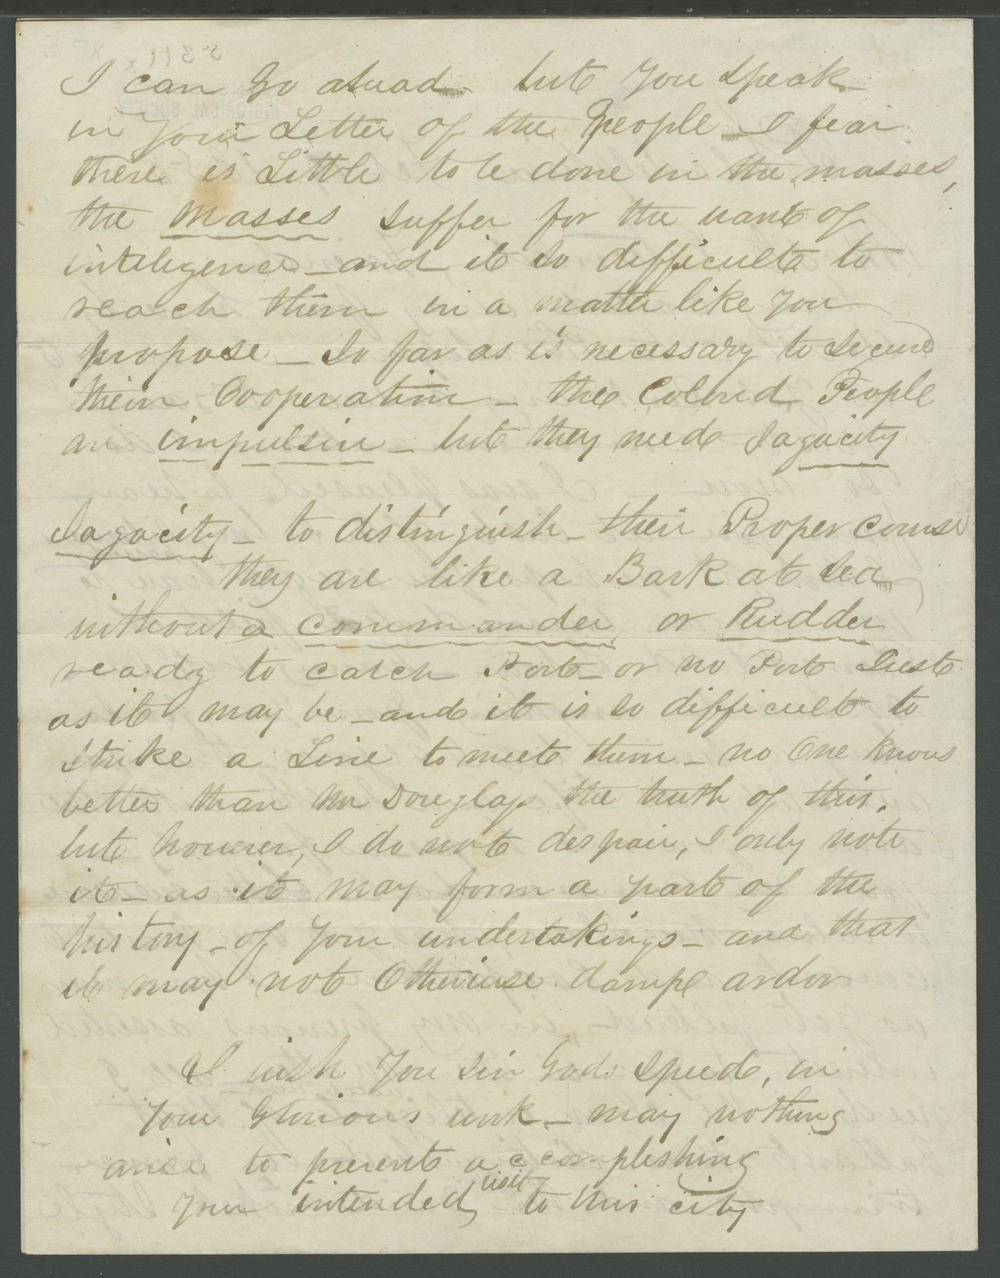 James N. Gloucester to John Brown - 2